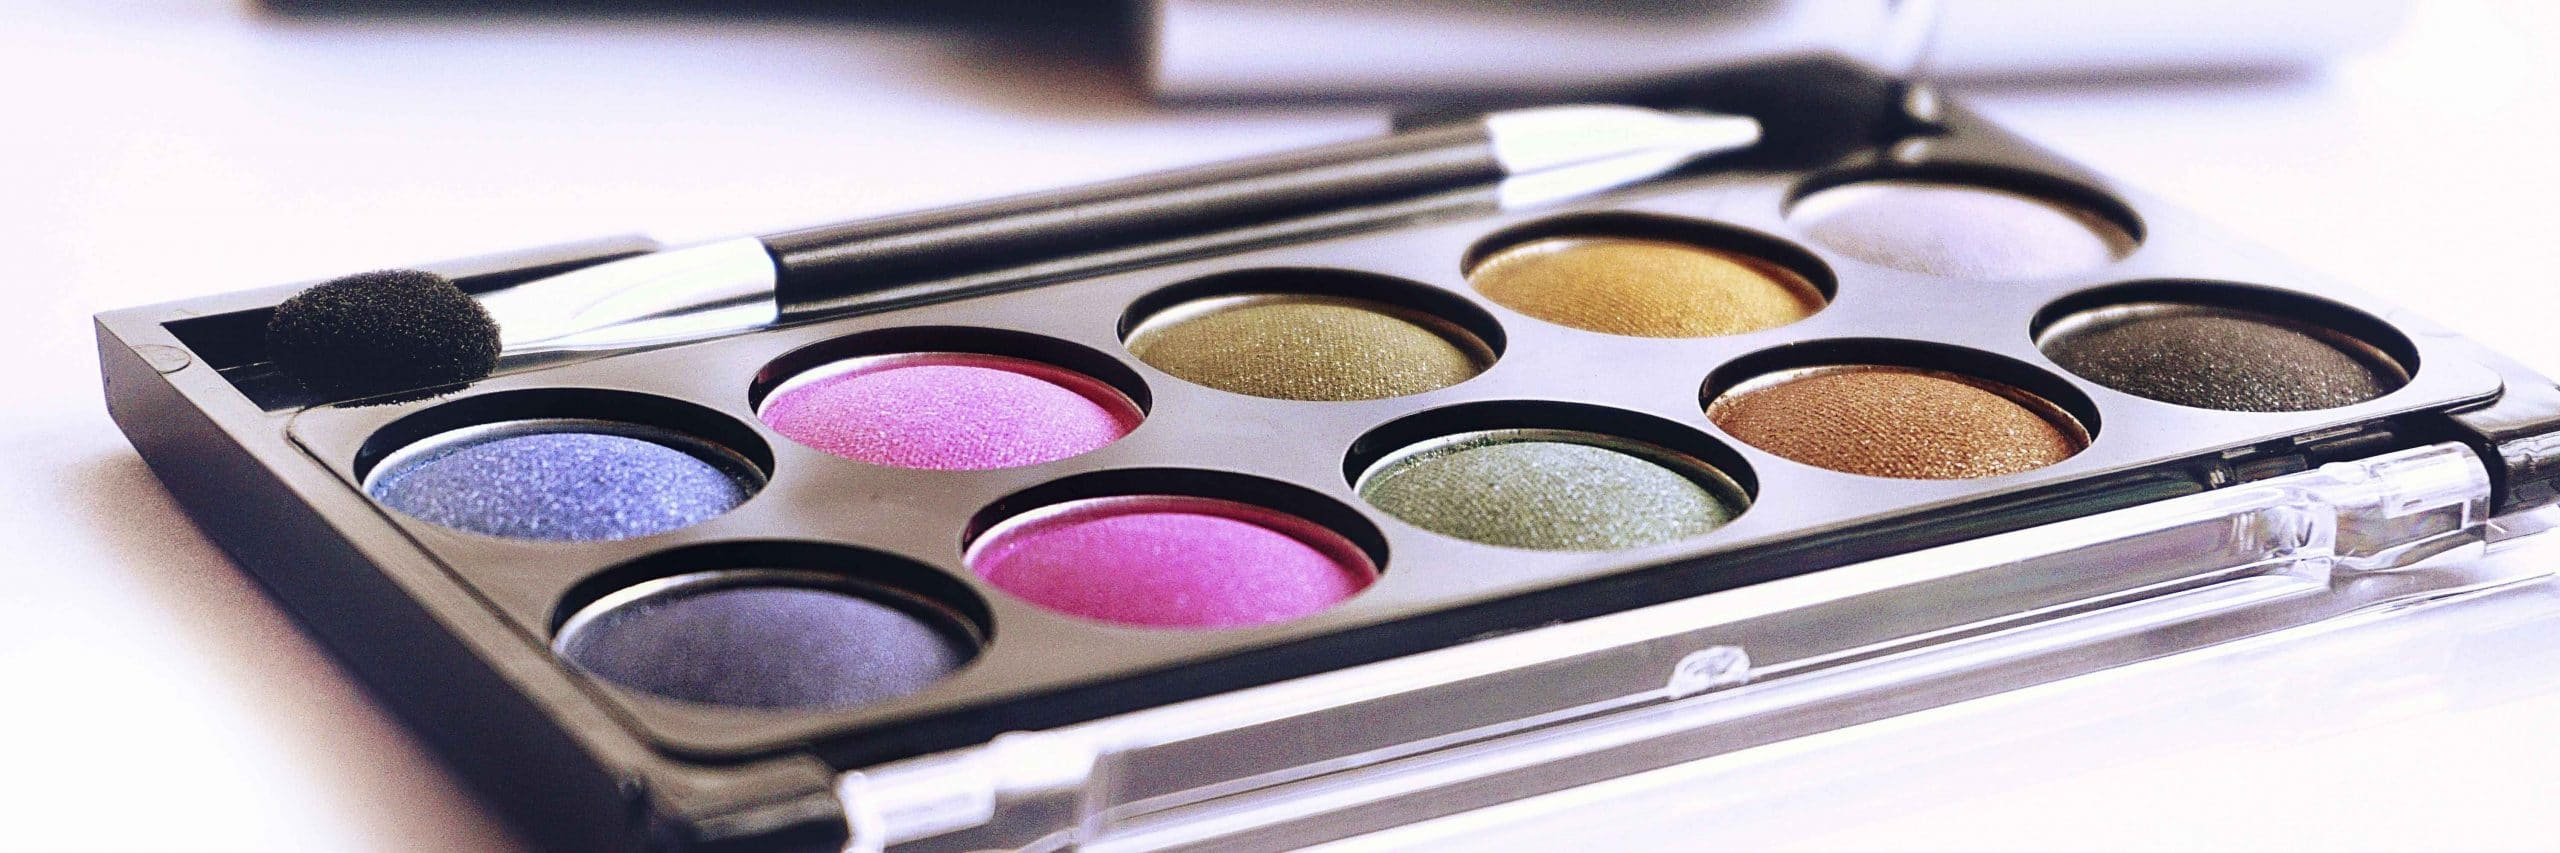 situations vacant -hair & makeup artist palettes